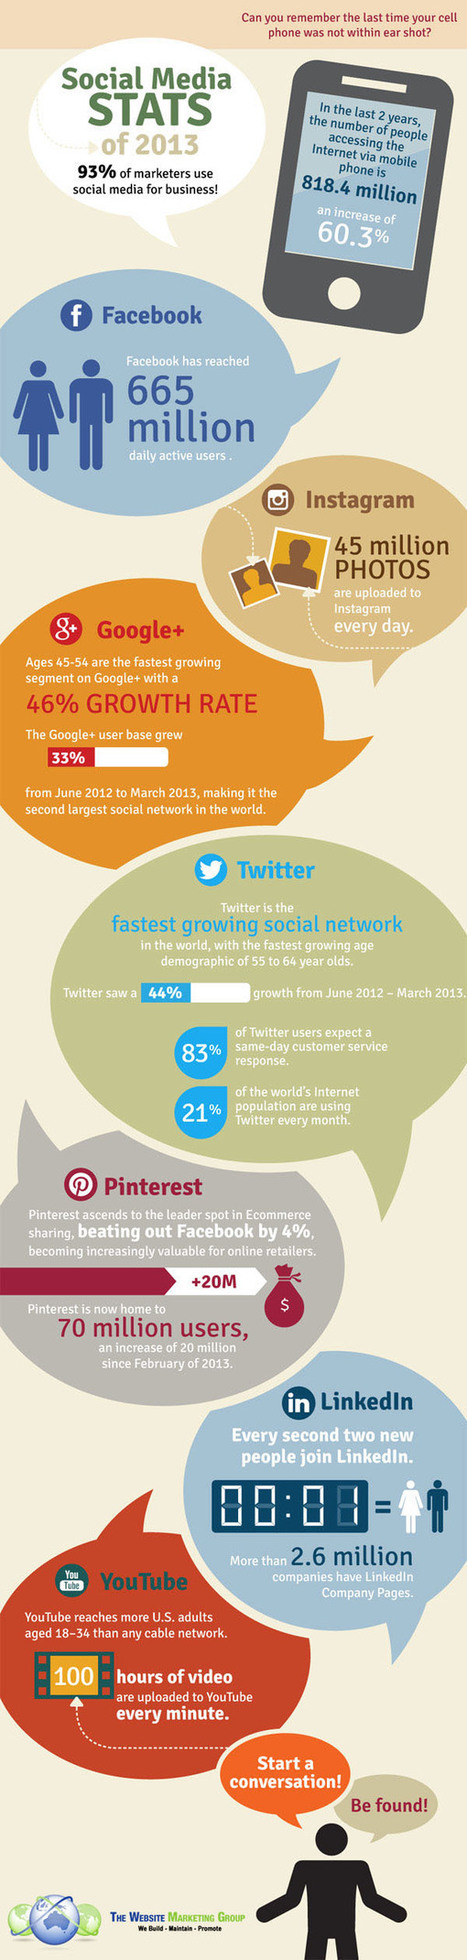 Social Media Infographic 2013 : Which platform is growing the fastest? | Buying, Selling and Working on the Internet | Scoop.it